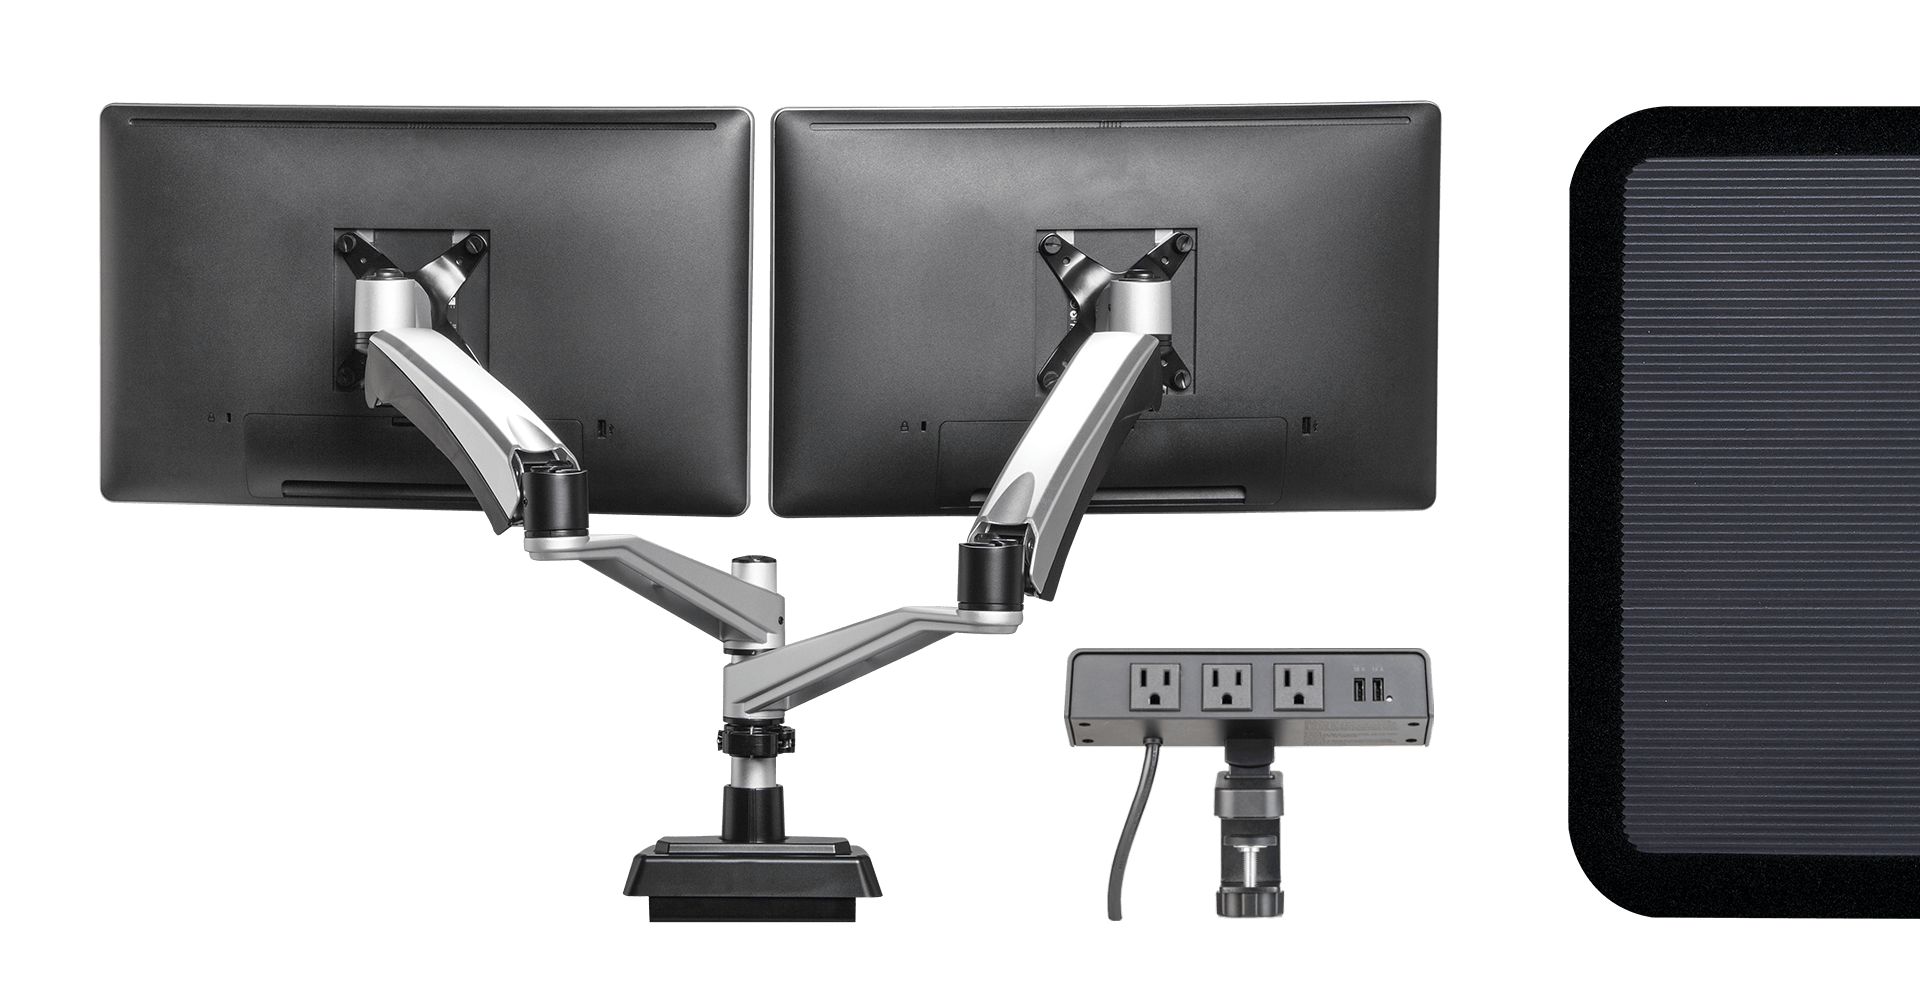 variety of accessories, including a standing mat, a powerhub for power solutions on the desktop, and dual monitor arms to hold monitors off the desk